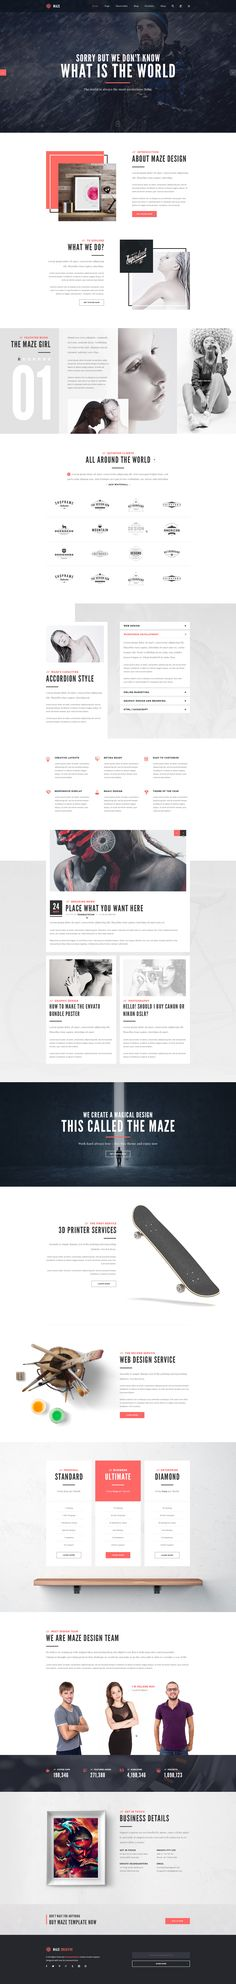 Some great cut out ideas to break up images and text. I don't like it all I like parts. Nice weighting.